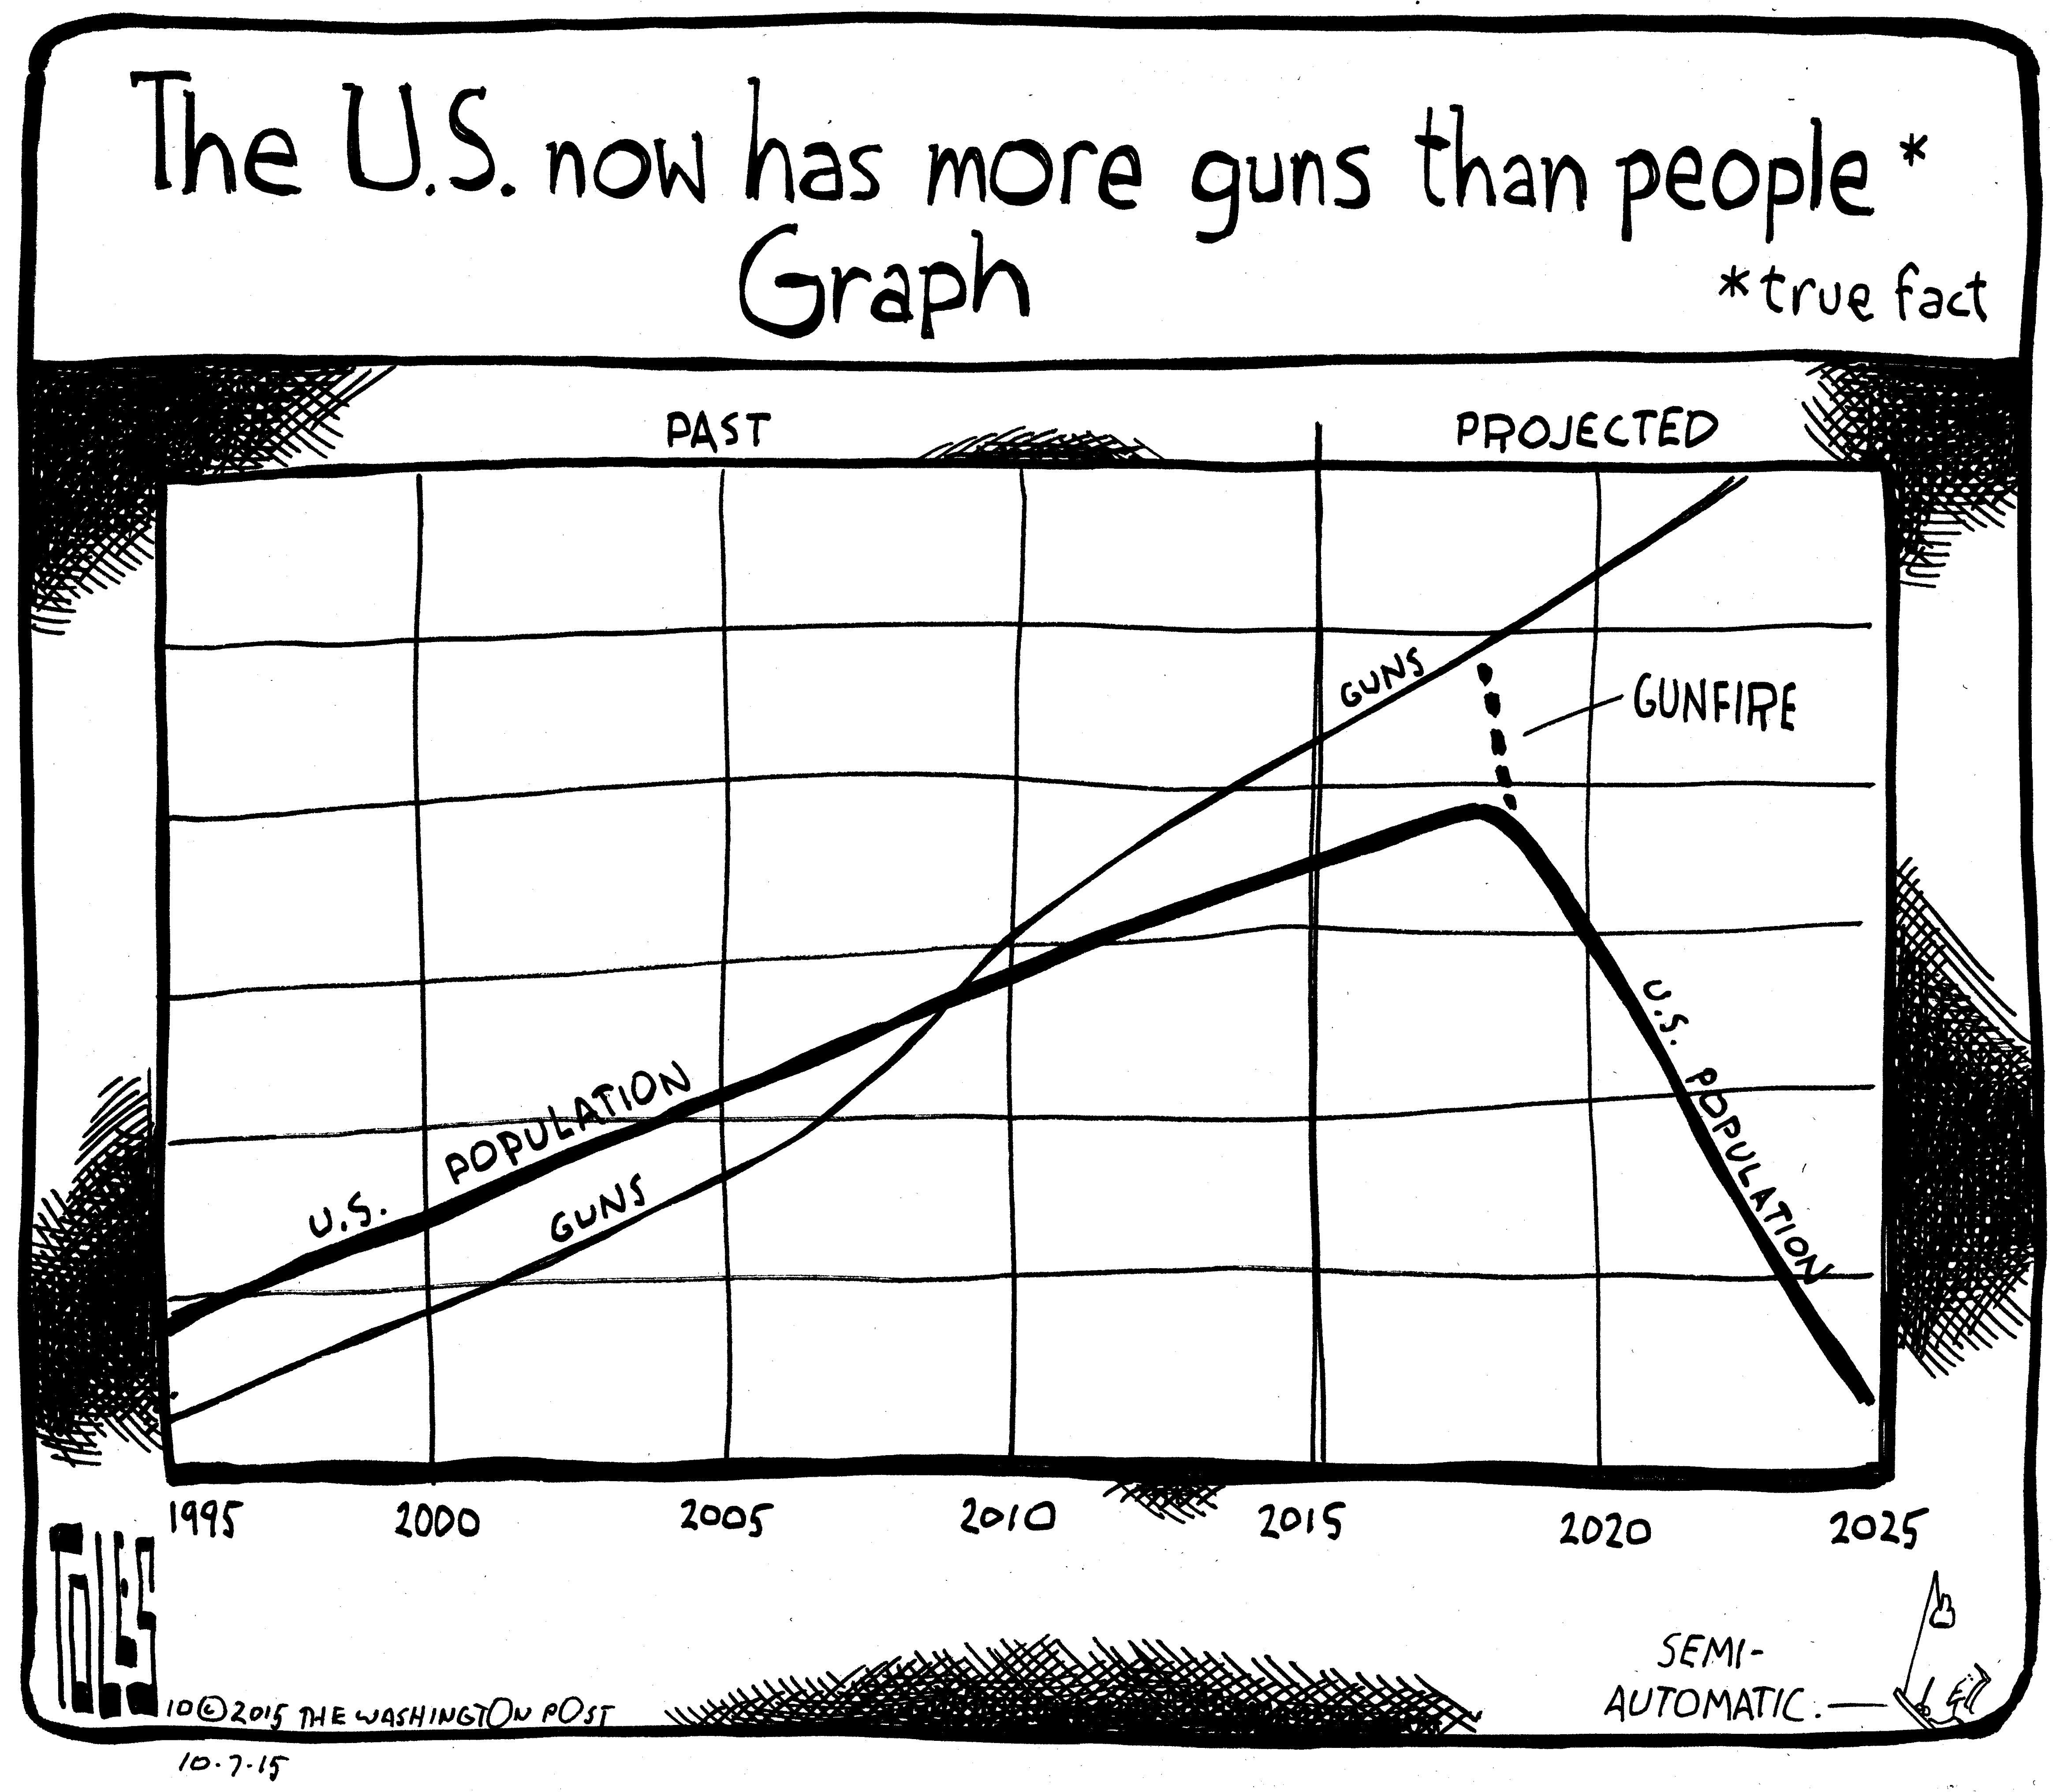 Wednesday S Cartoon The More Guns Than People Graph